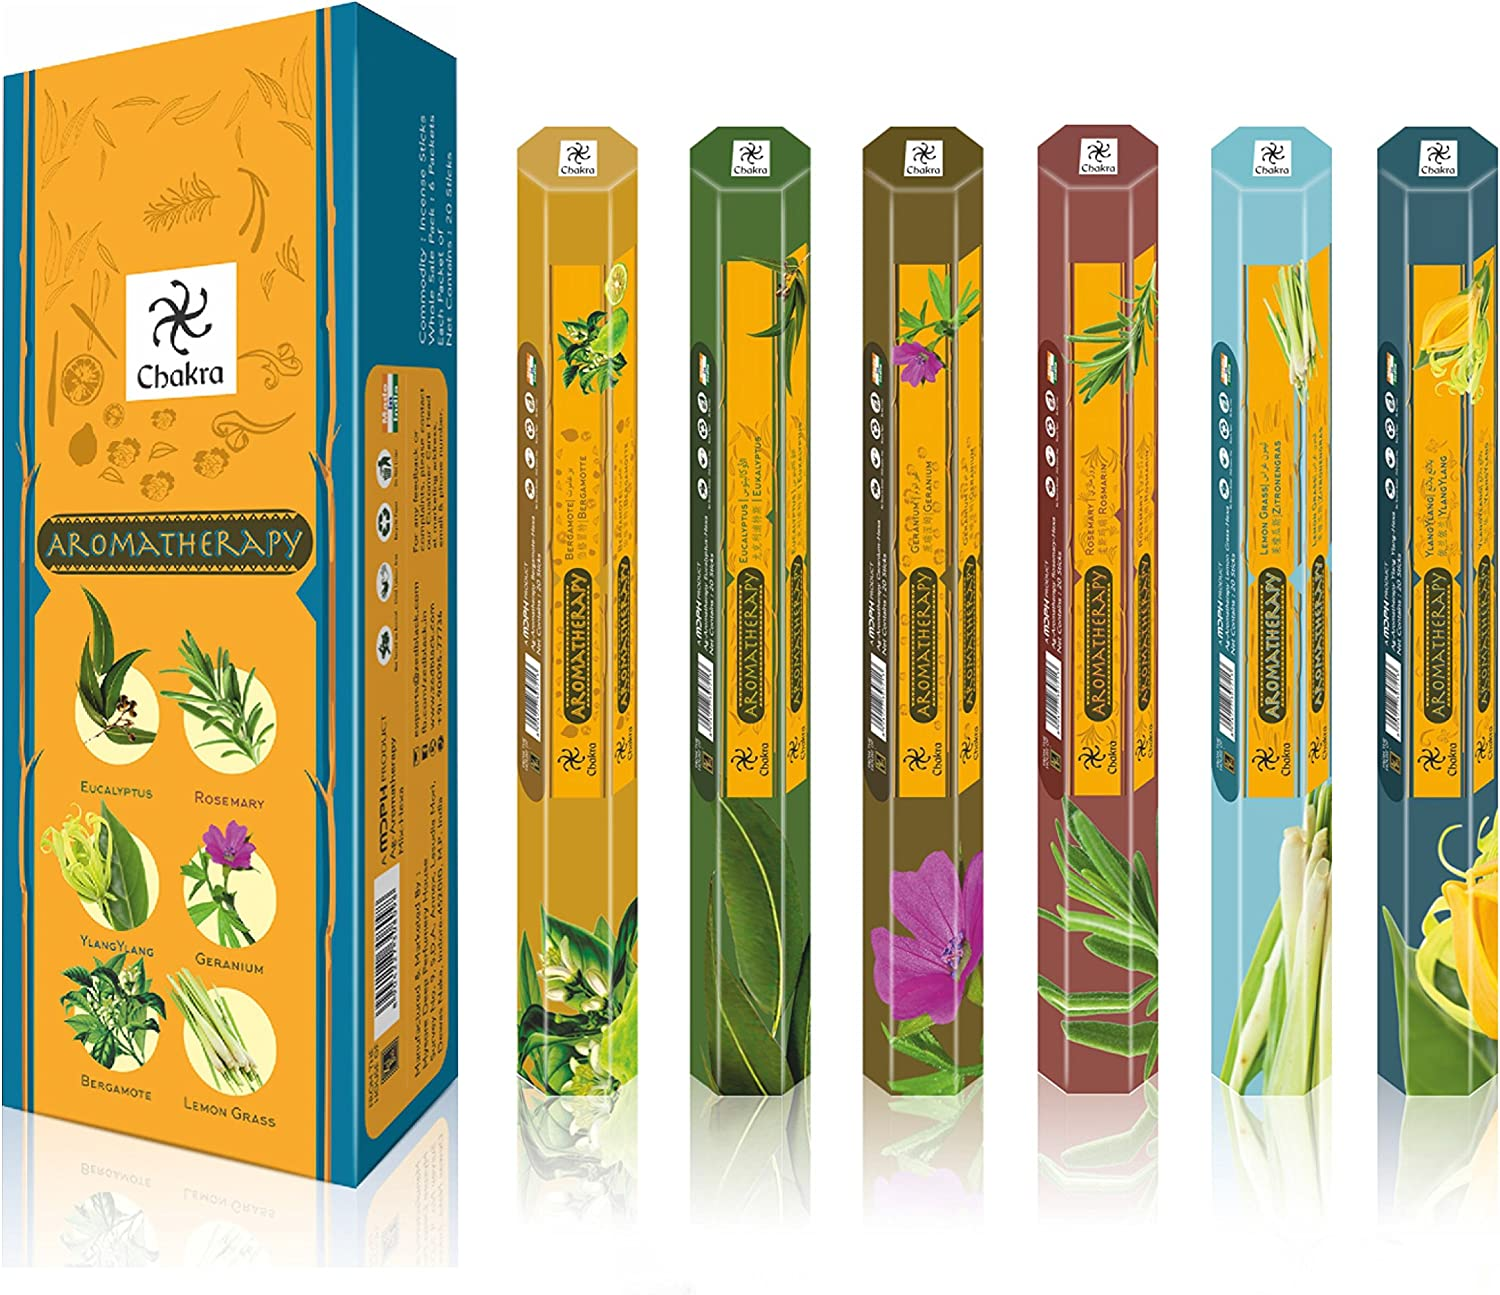 chakra Aromatherapy Natural Fragrance Scented Sticks - Promotes Health and Well Being- 20 Incense Sticks Per Box - Long Lasting 120 Fragrance Sticks - Pack of 6